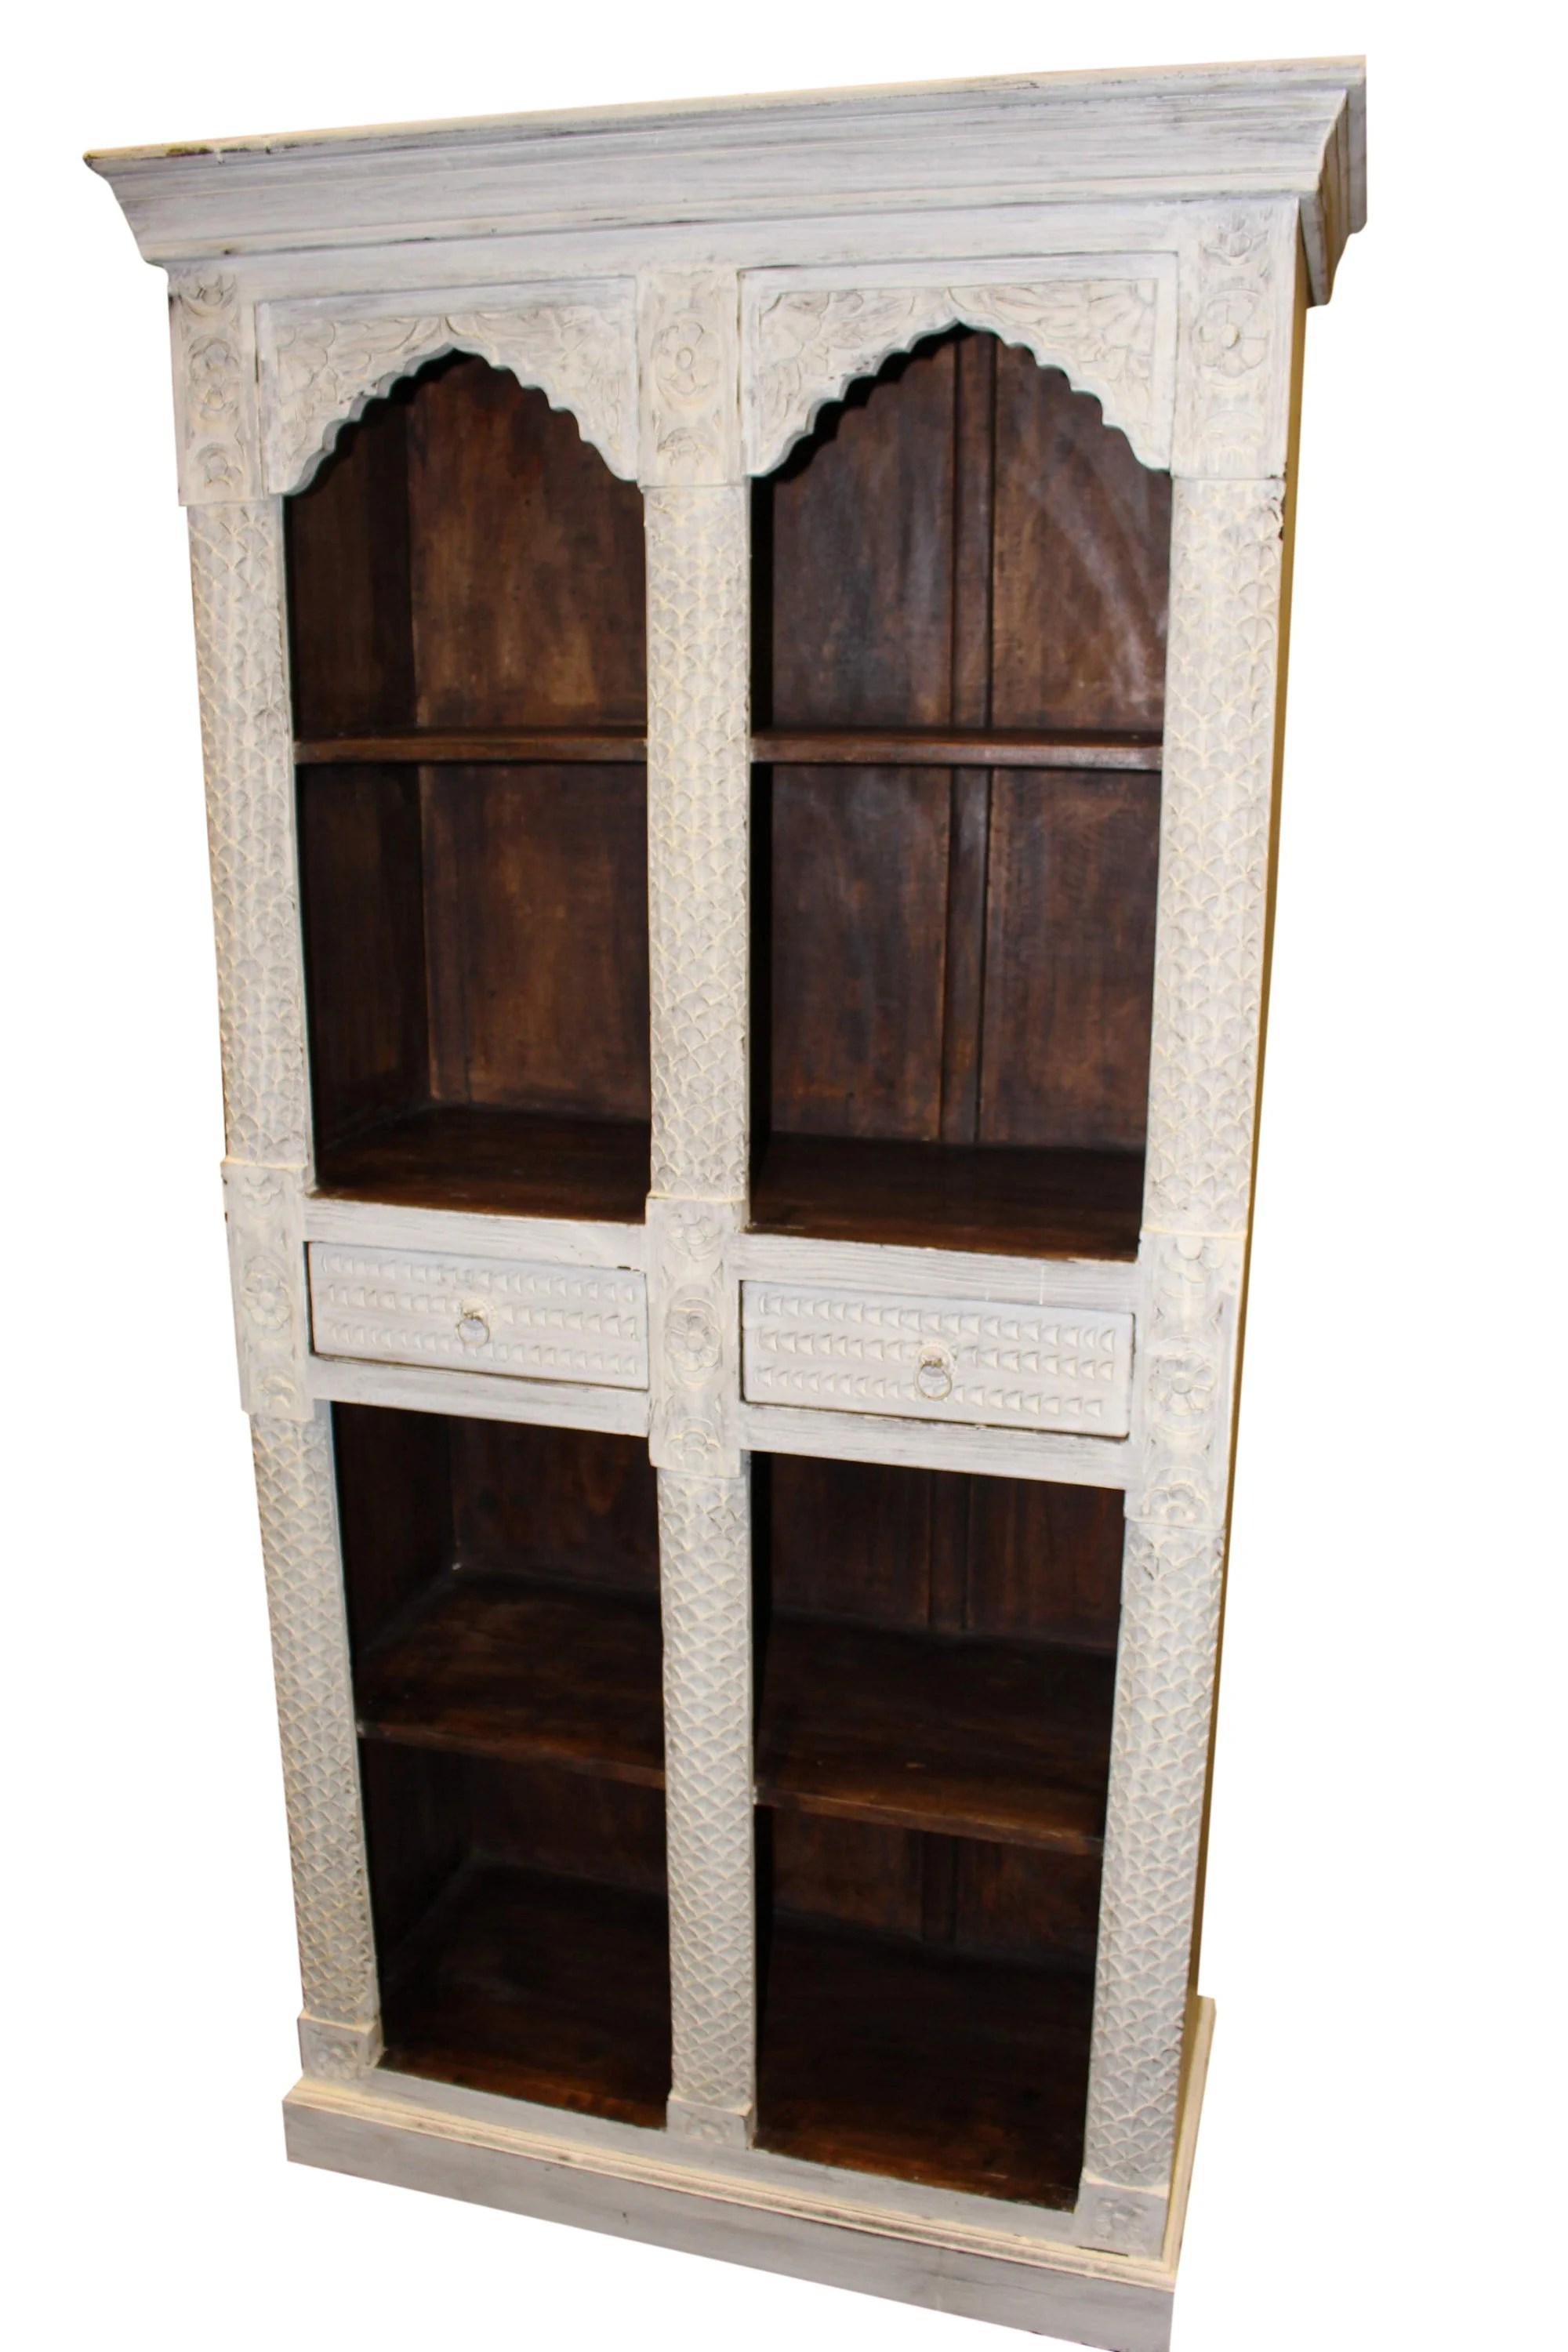 Vintage Bookcase Antique White Dark Brown Indian Style Arch Bookcase Solid Teak Wood Two Drawers Vintage Bookshelf Storage Cabinet